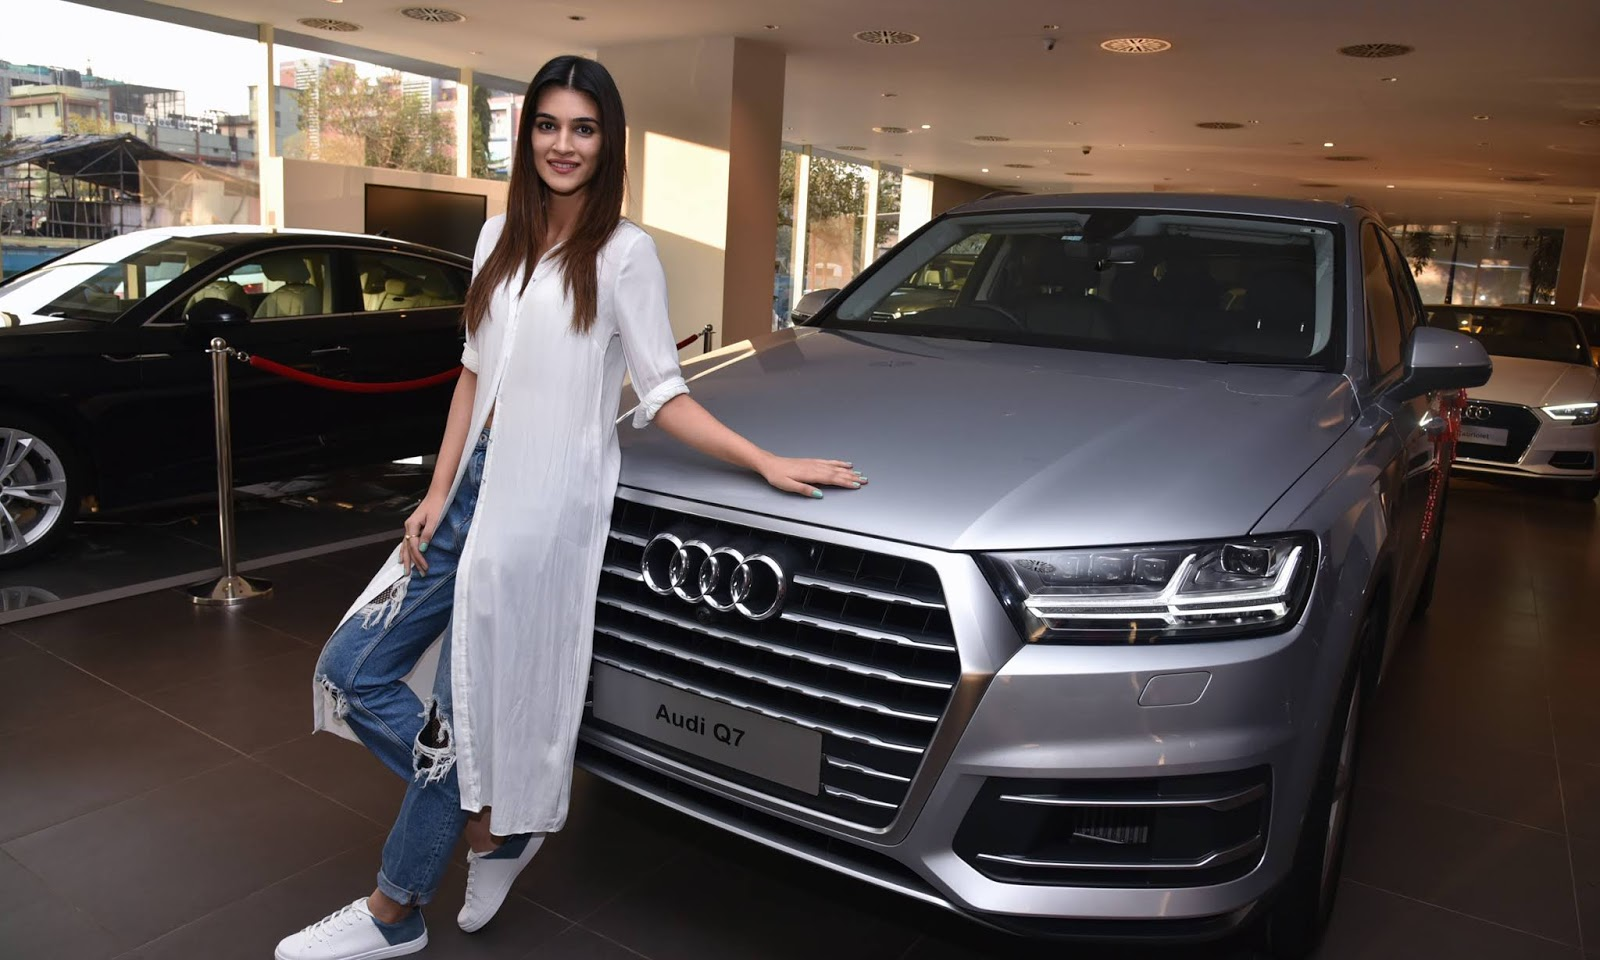 Kriti Sanon Hd Images And Wallpapers And Unknown Facts: Kriti Sanon HD Wallpapers